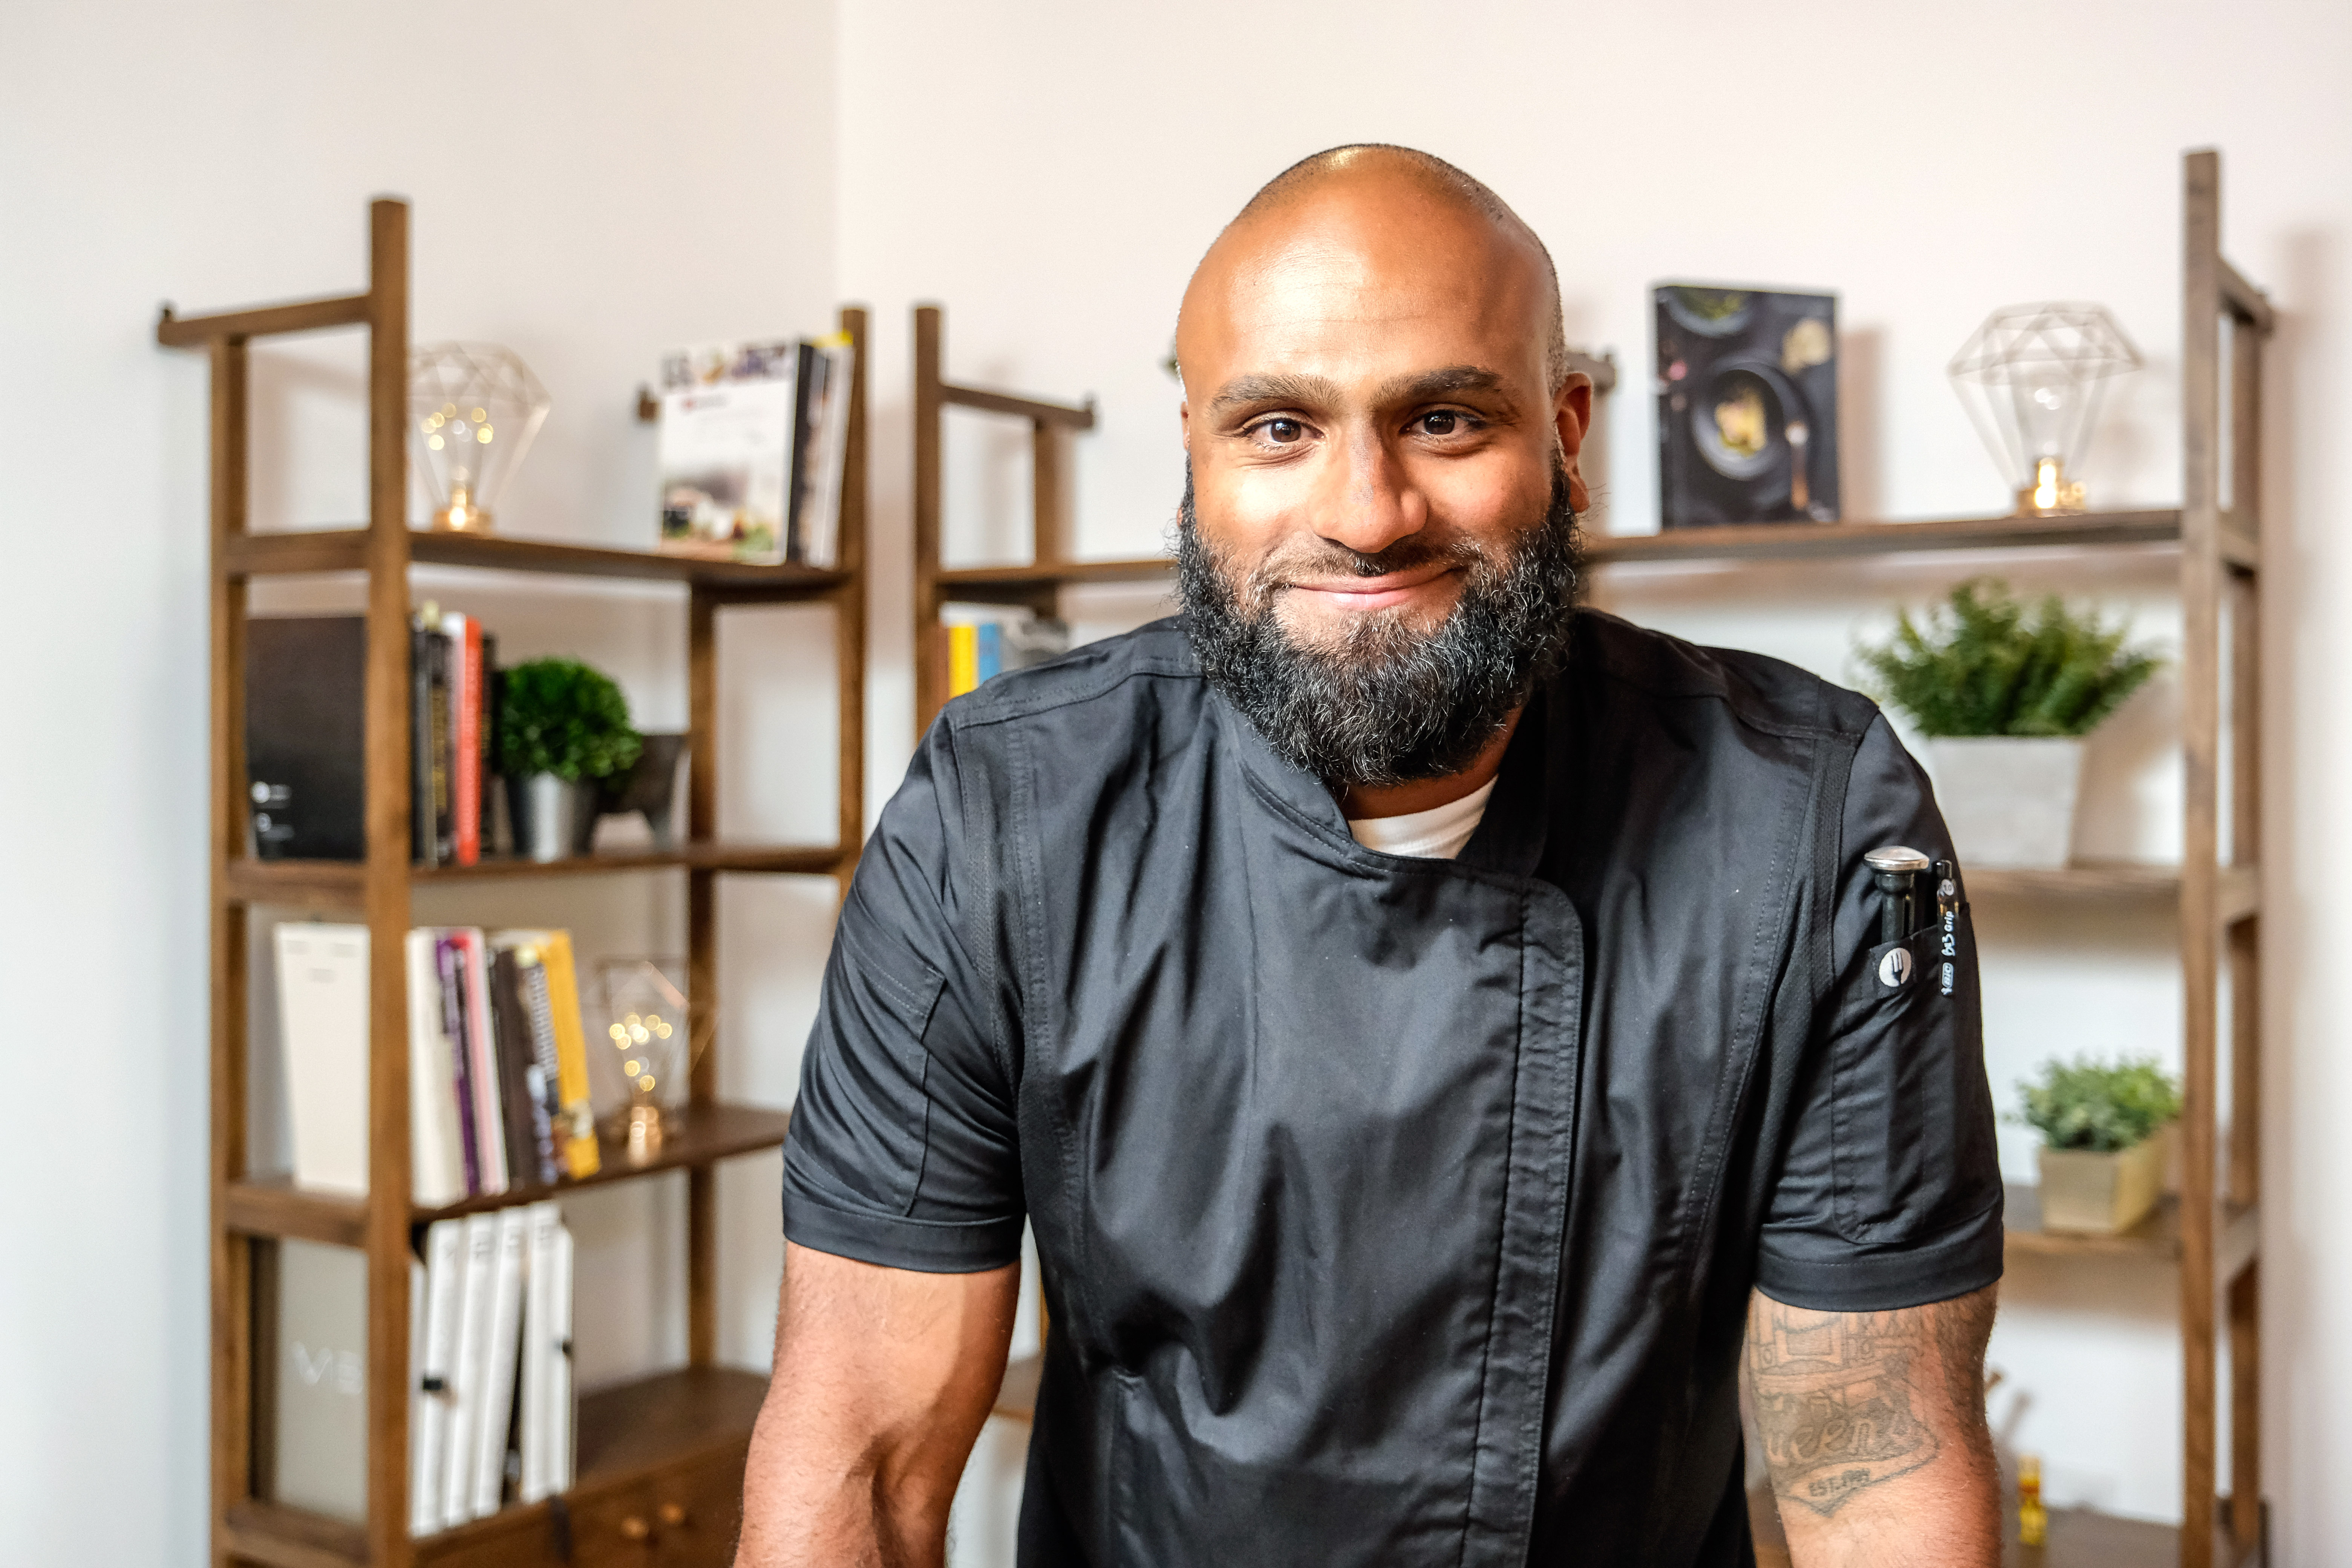 A chef leans forward with bookshelves behind him.